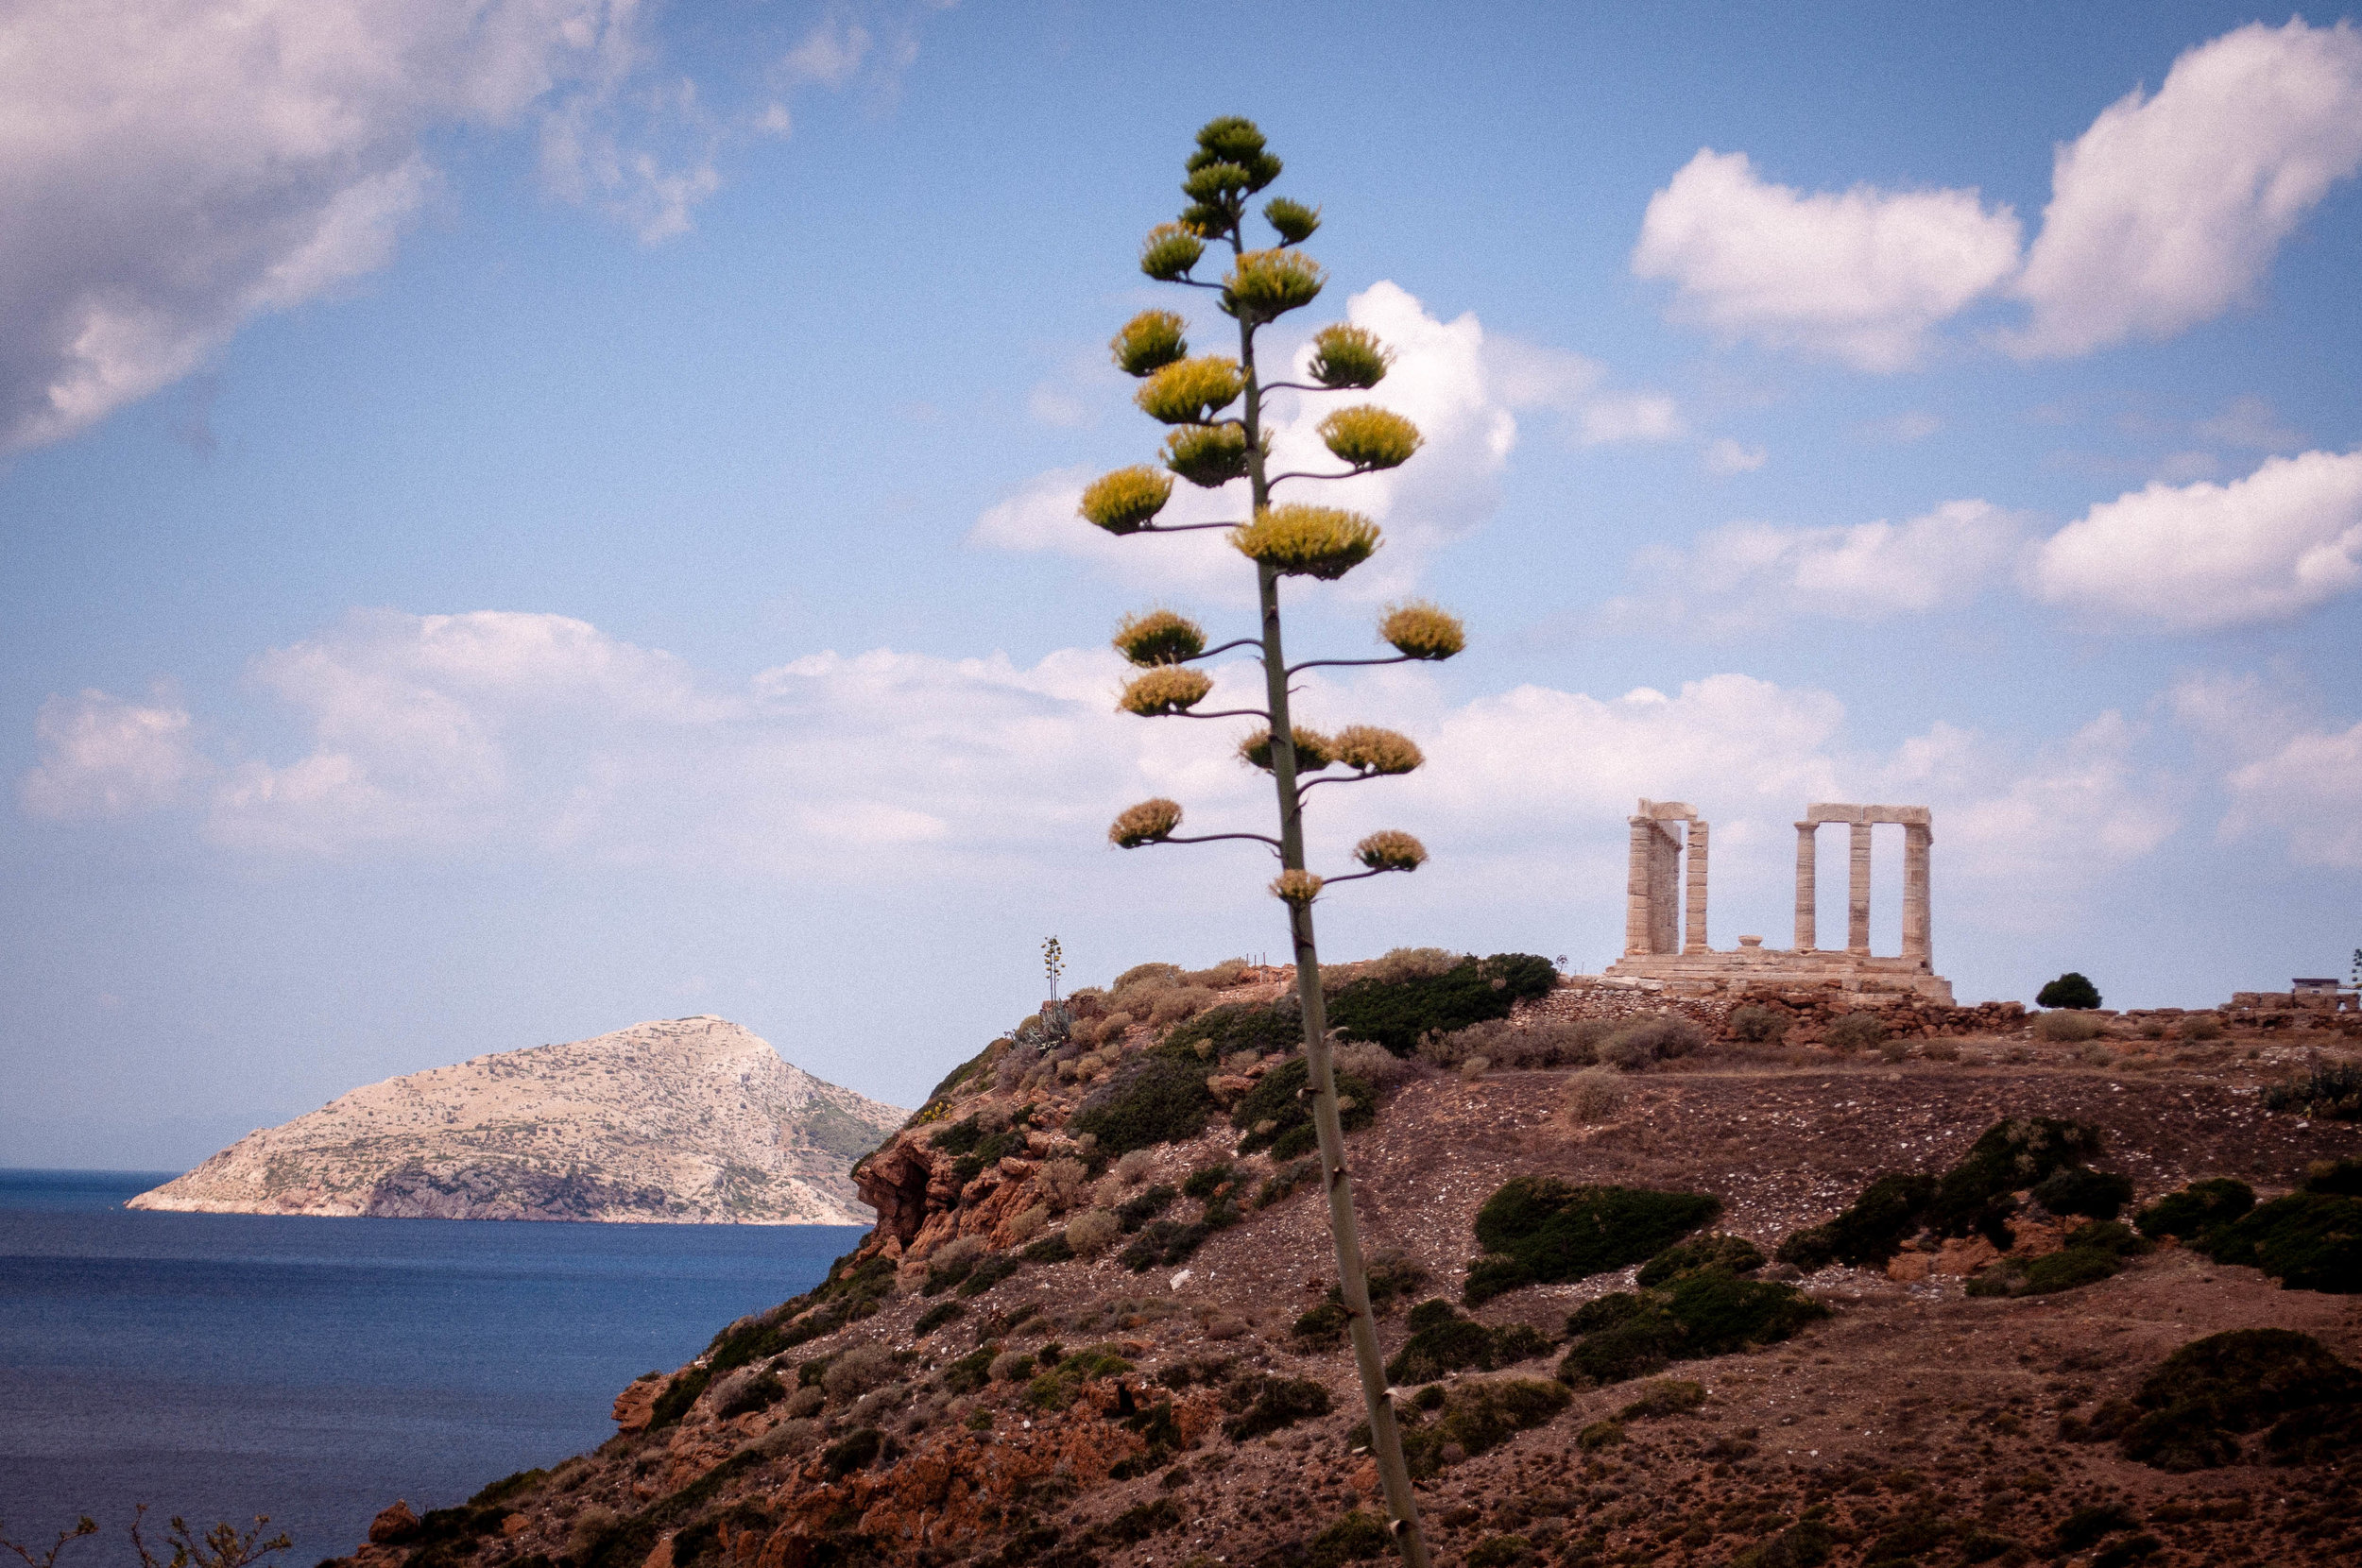 Blue sky with clouds, sea and creeks with desert-like vegetation.  On the foreground we see a tree and on the background we see the remaining ruins of the temple of Sounion